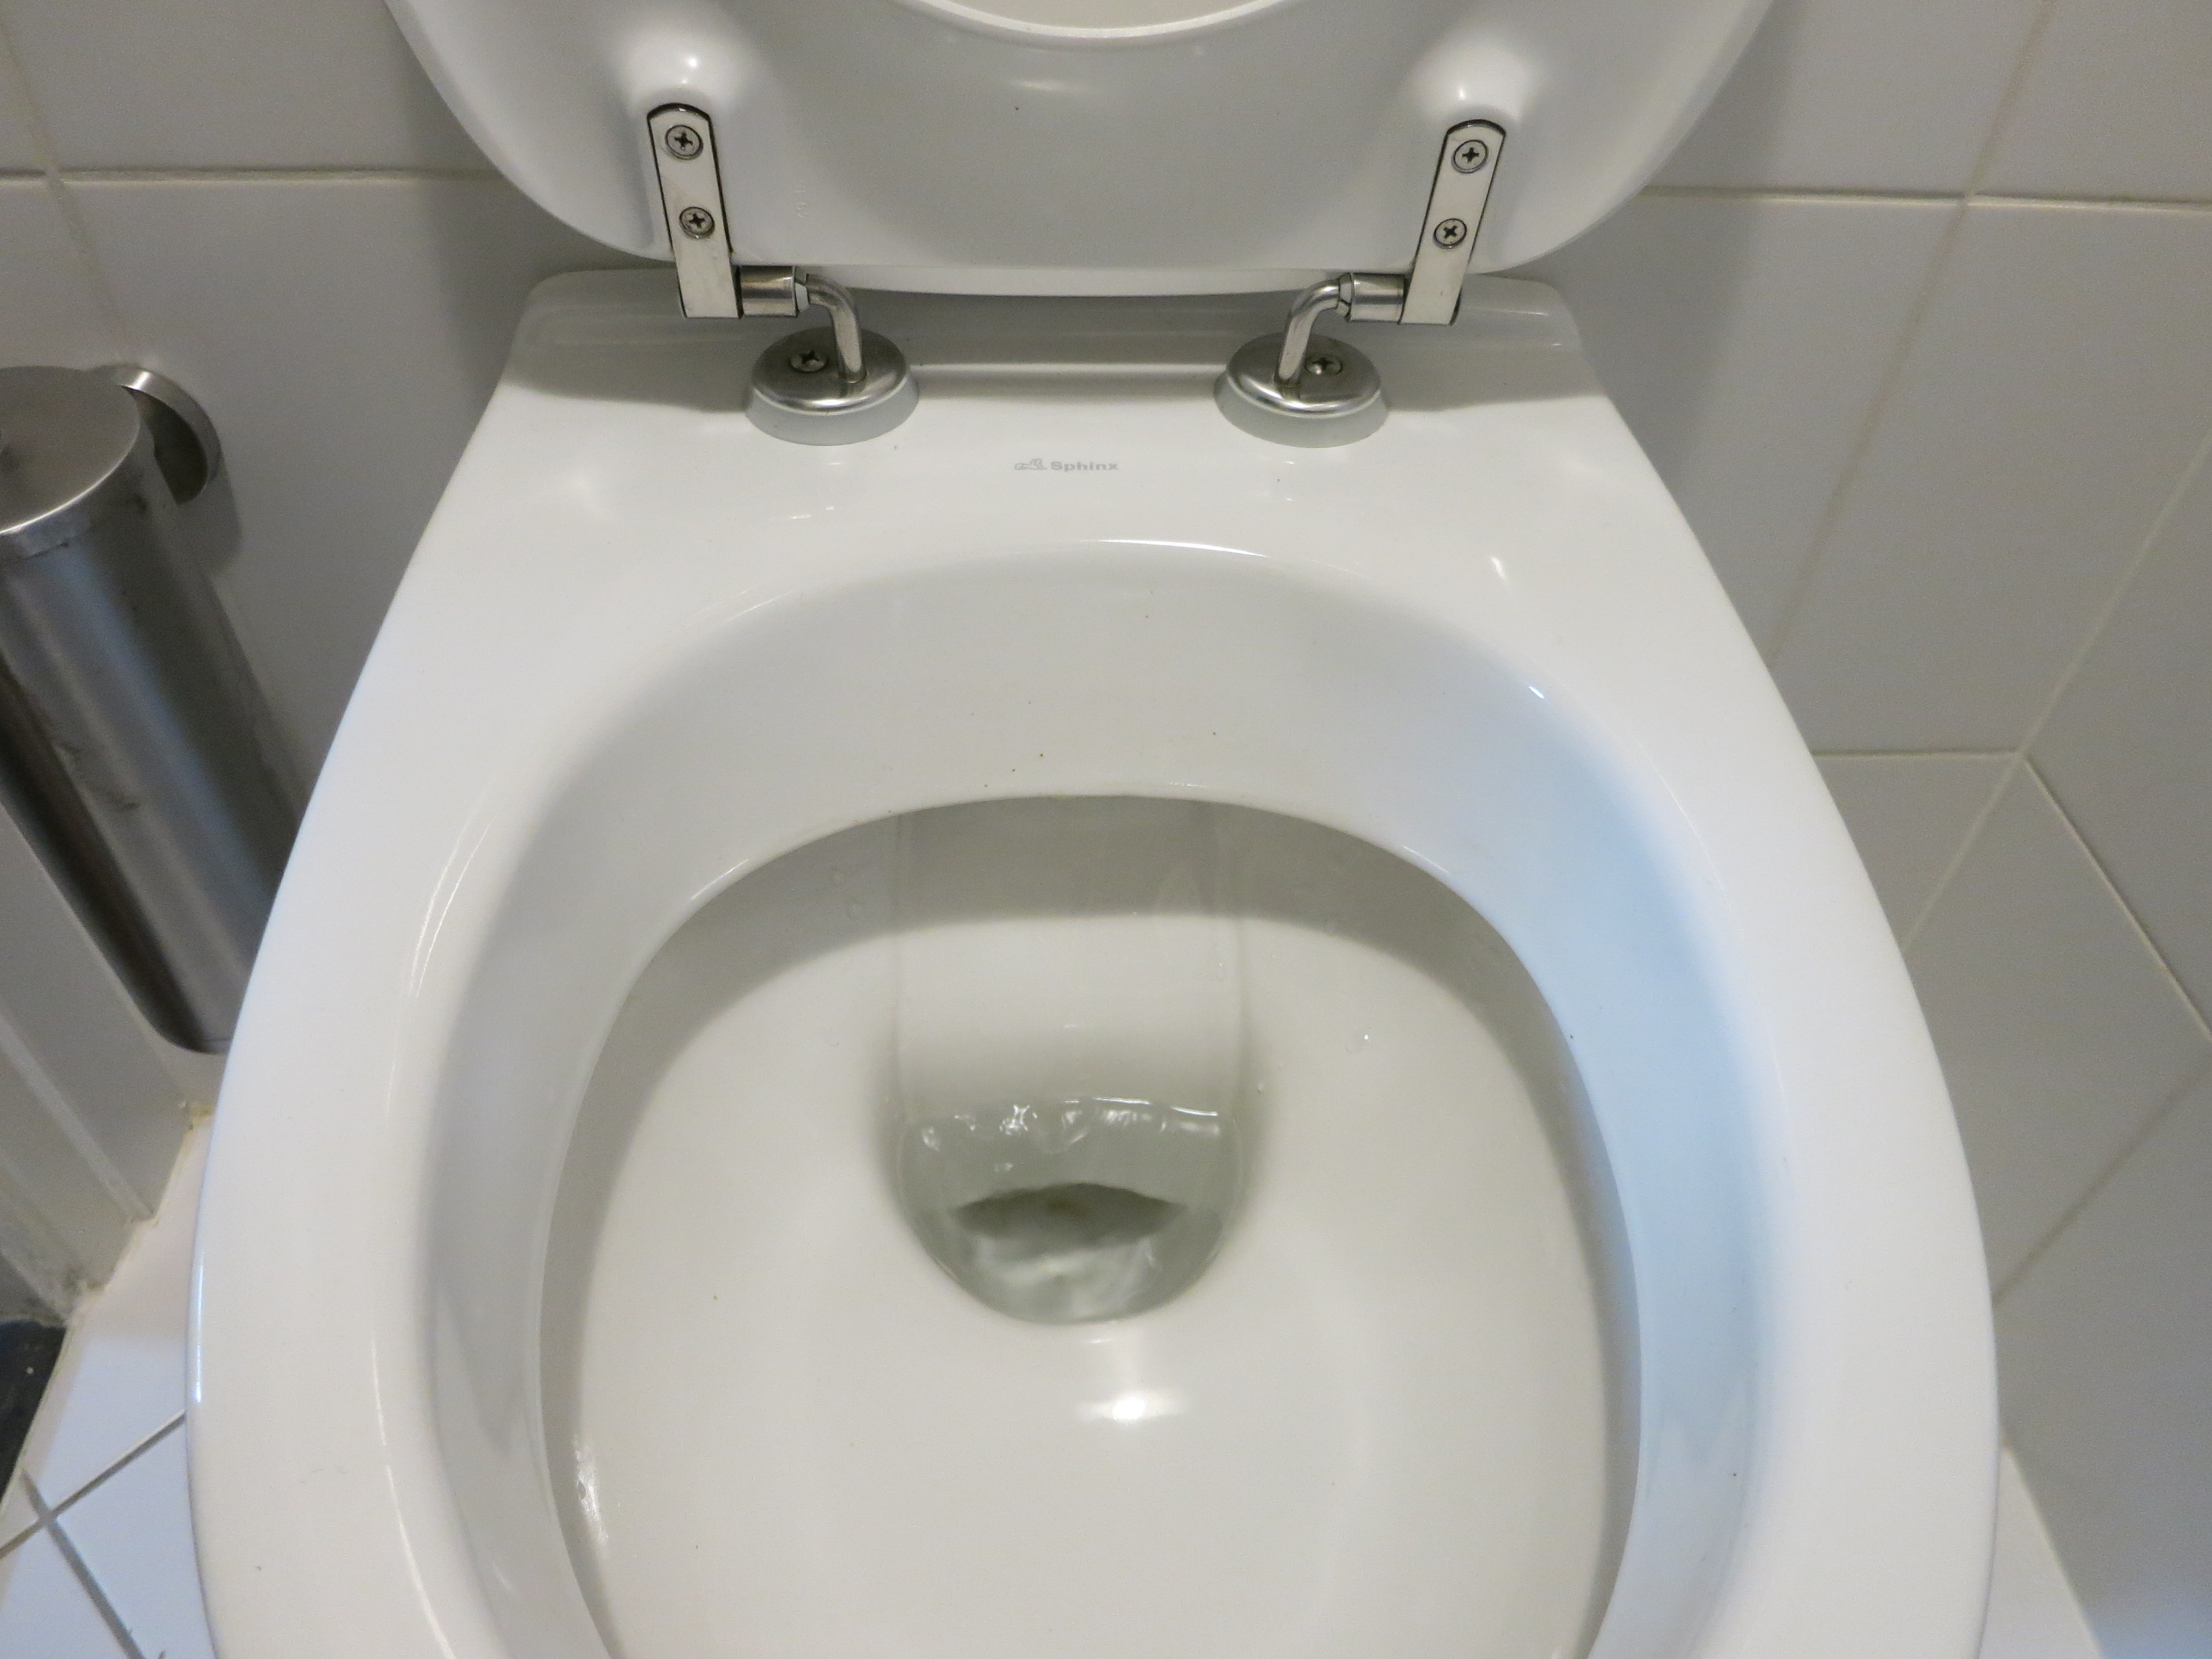 Korte Toiletpot Loopt Het Water Door In Je Wc Bas Blogt